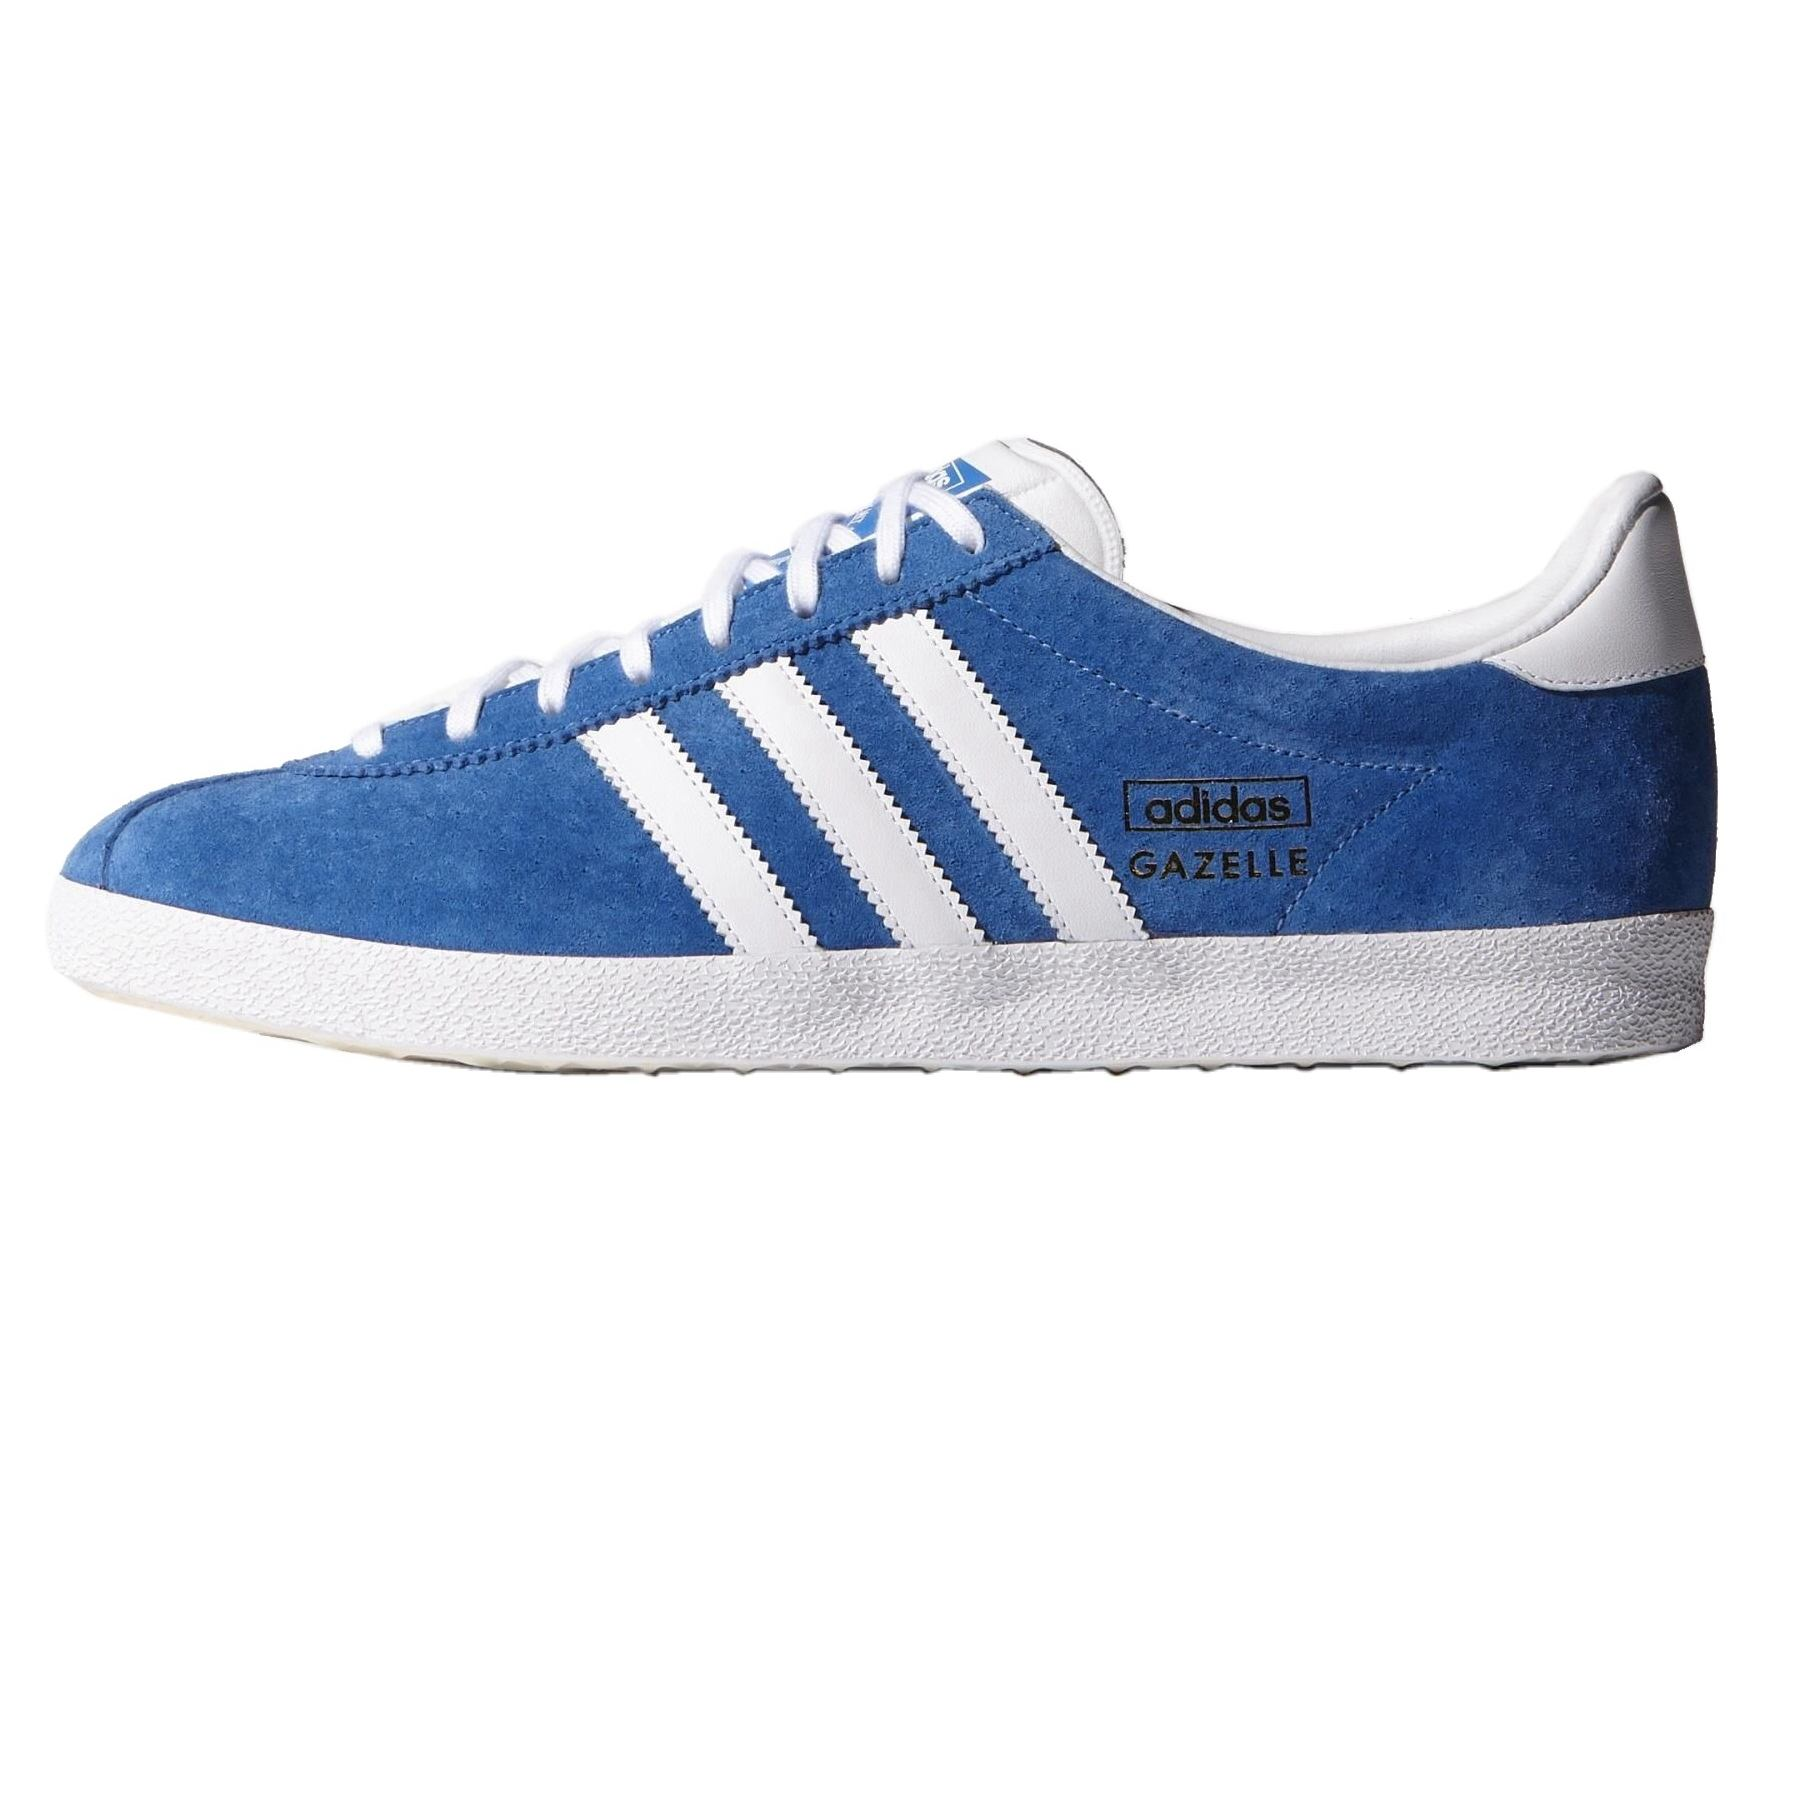 adidas originals gazelle og schuhe sneaker herren damen diverse farben ebay. Black Bedroom Furniture Sets. Home Design Ideas